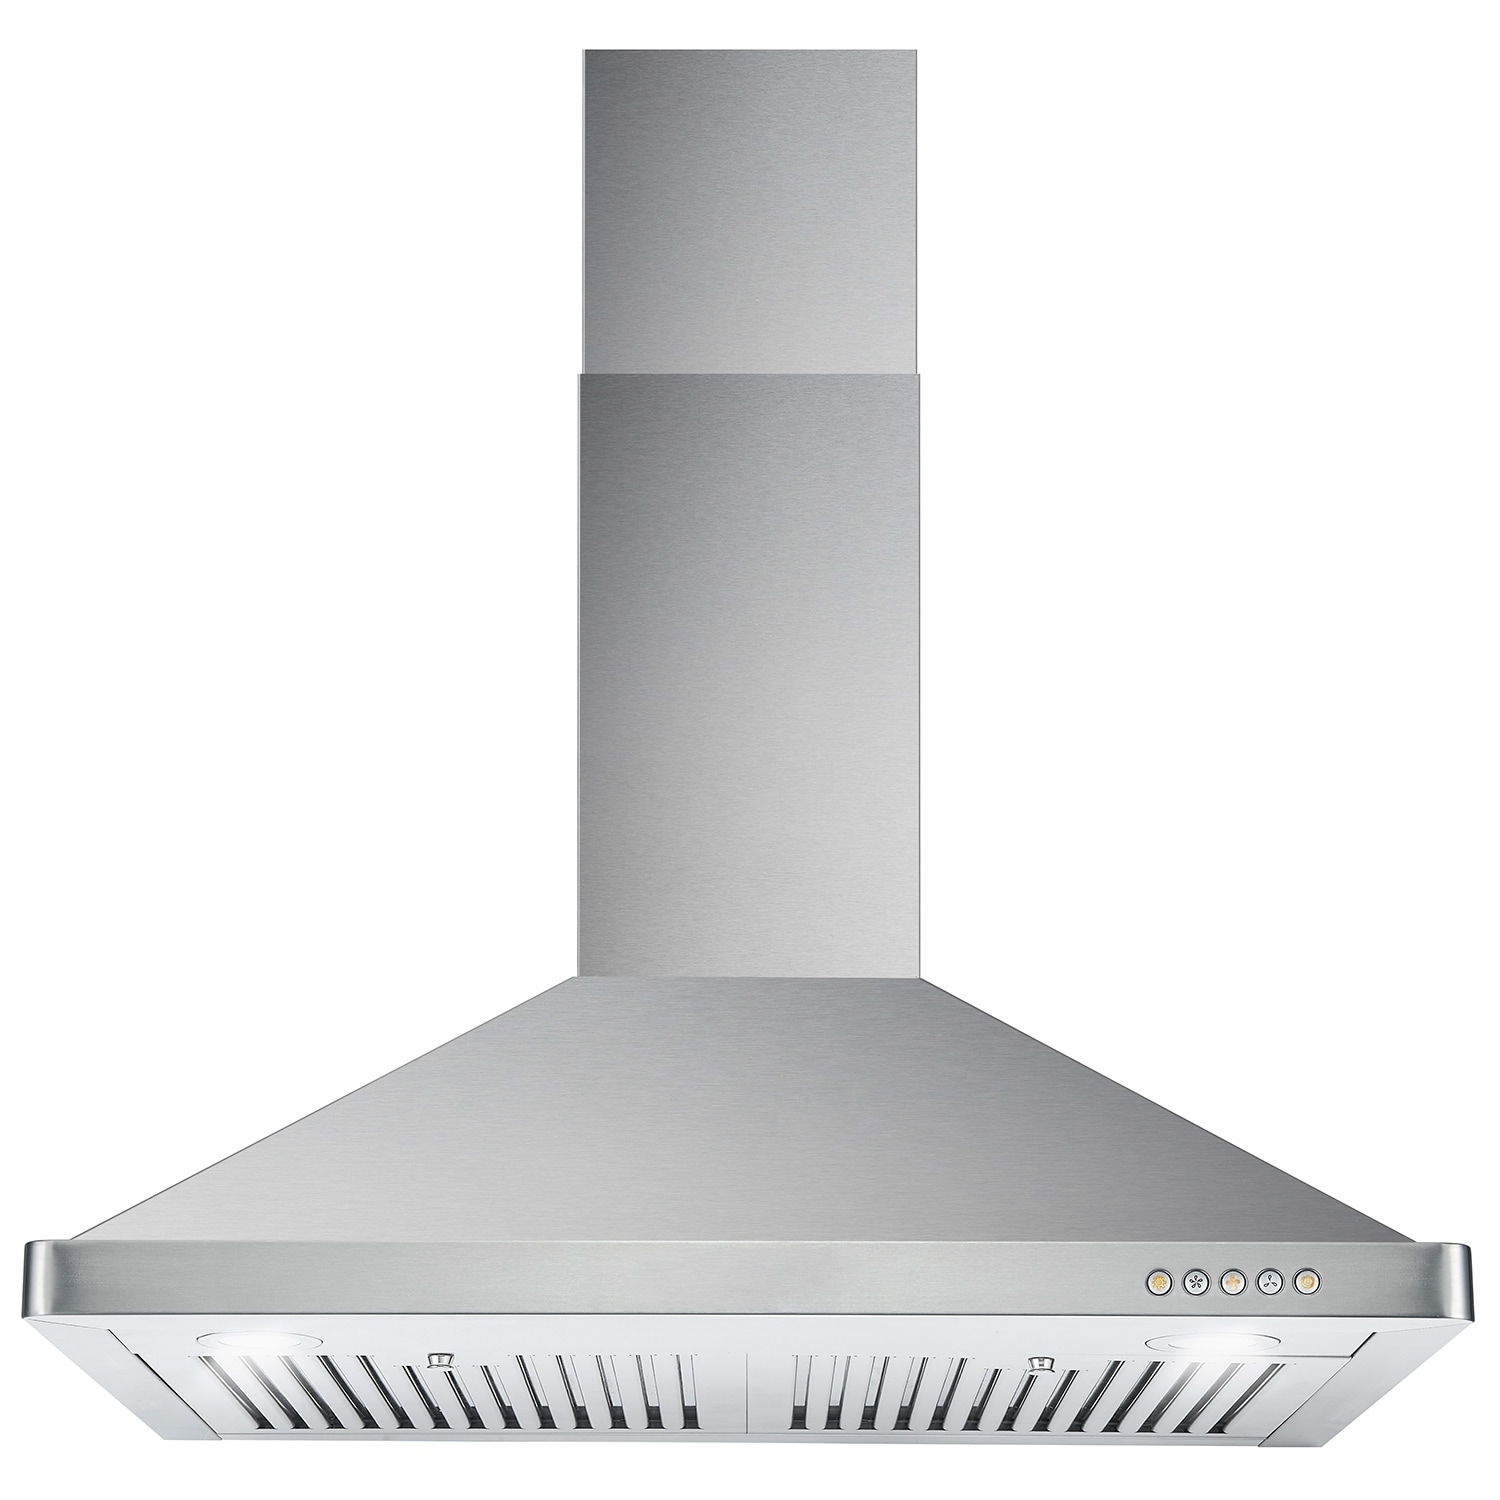 30 inch oswrh668s3bk 30 ak black stainless steel wall mount range hood - Cosmo 63190ft750 30 Inch 760 Cfm Ducted Wall Mount Stainless Steel Range Hood